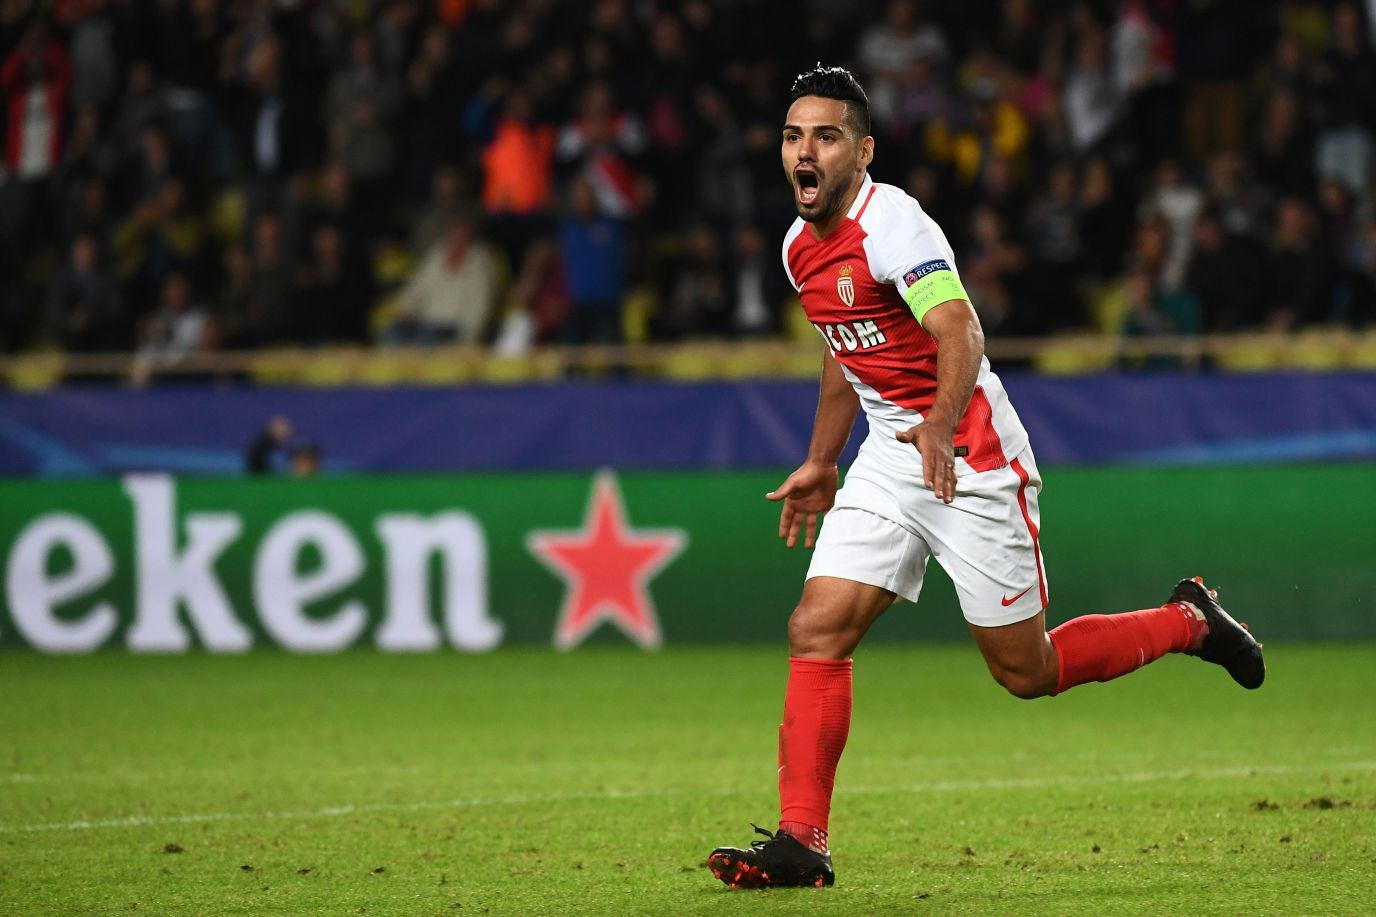 Monaco's Colombian forward Radamel Falcao celebrates after scoring a goal during the UEFA Champions League Group E football match between AS Monaco FC and PFC CSKA Moscow at the Louis II Stadium in Monaco on November 2, 2016. / AFP / ANNE-CHRISTINE POUJOULAT (Photo credit should read ANNE-CHRISTINE POUJOULAT/AFP/Getty Images)